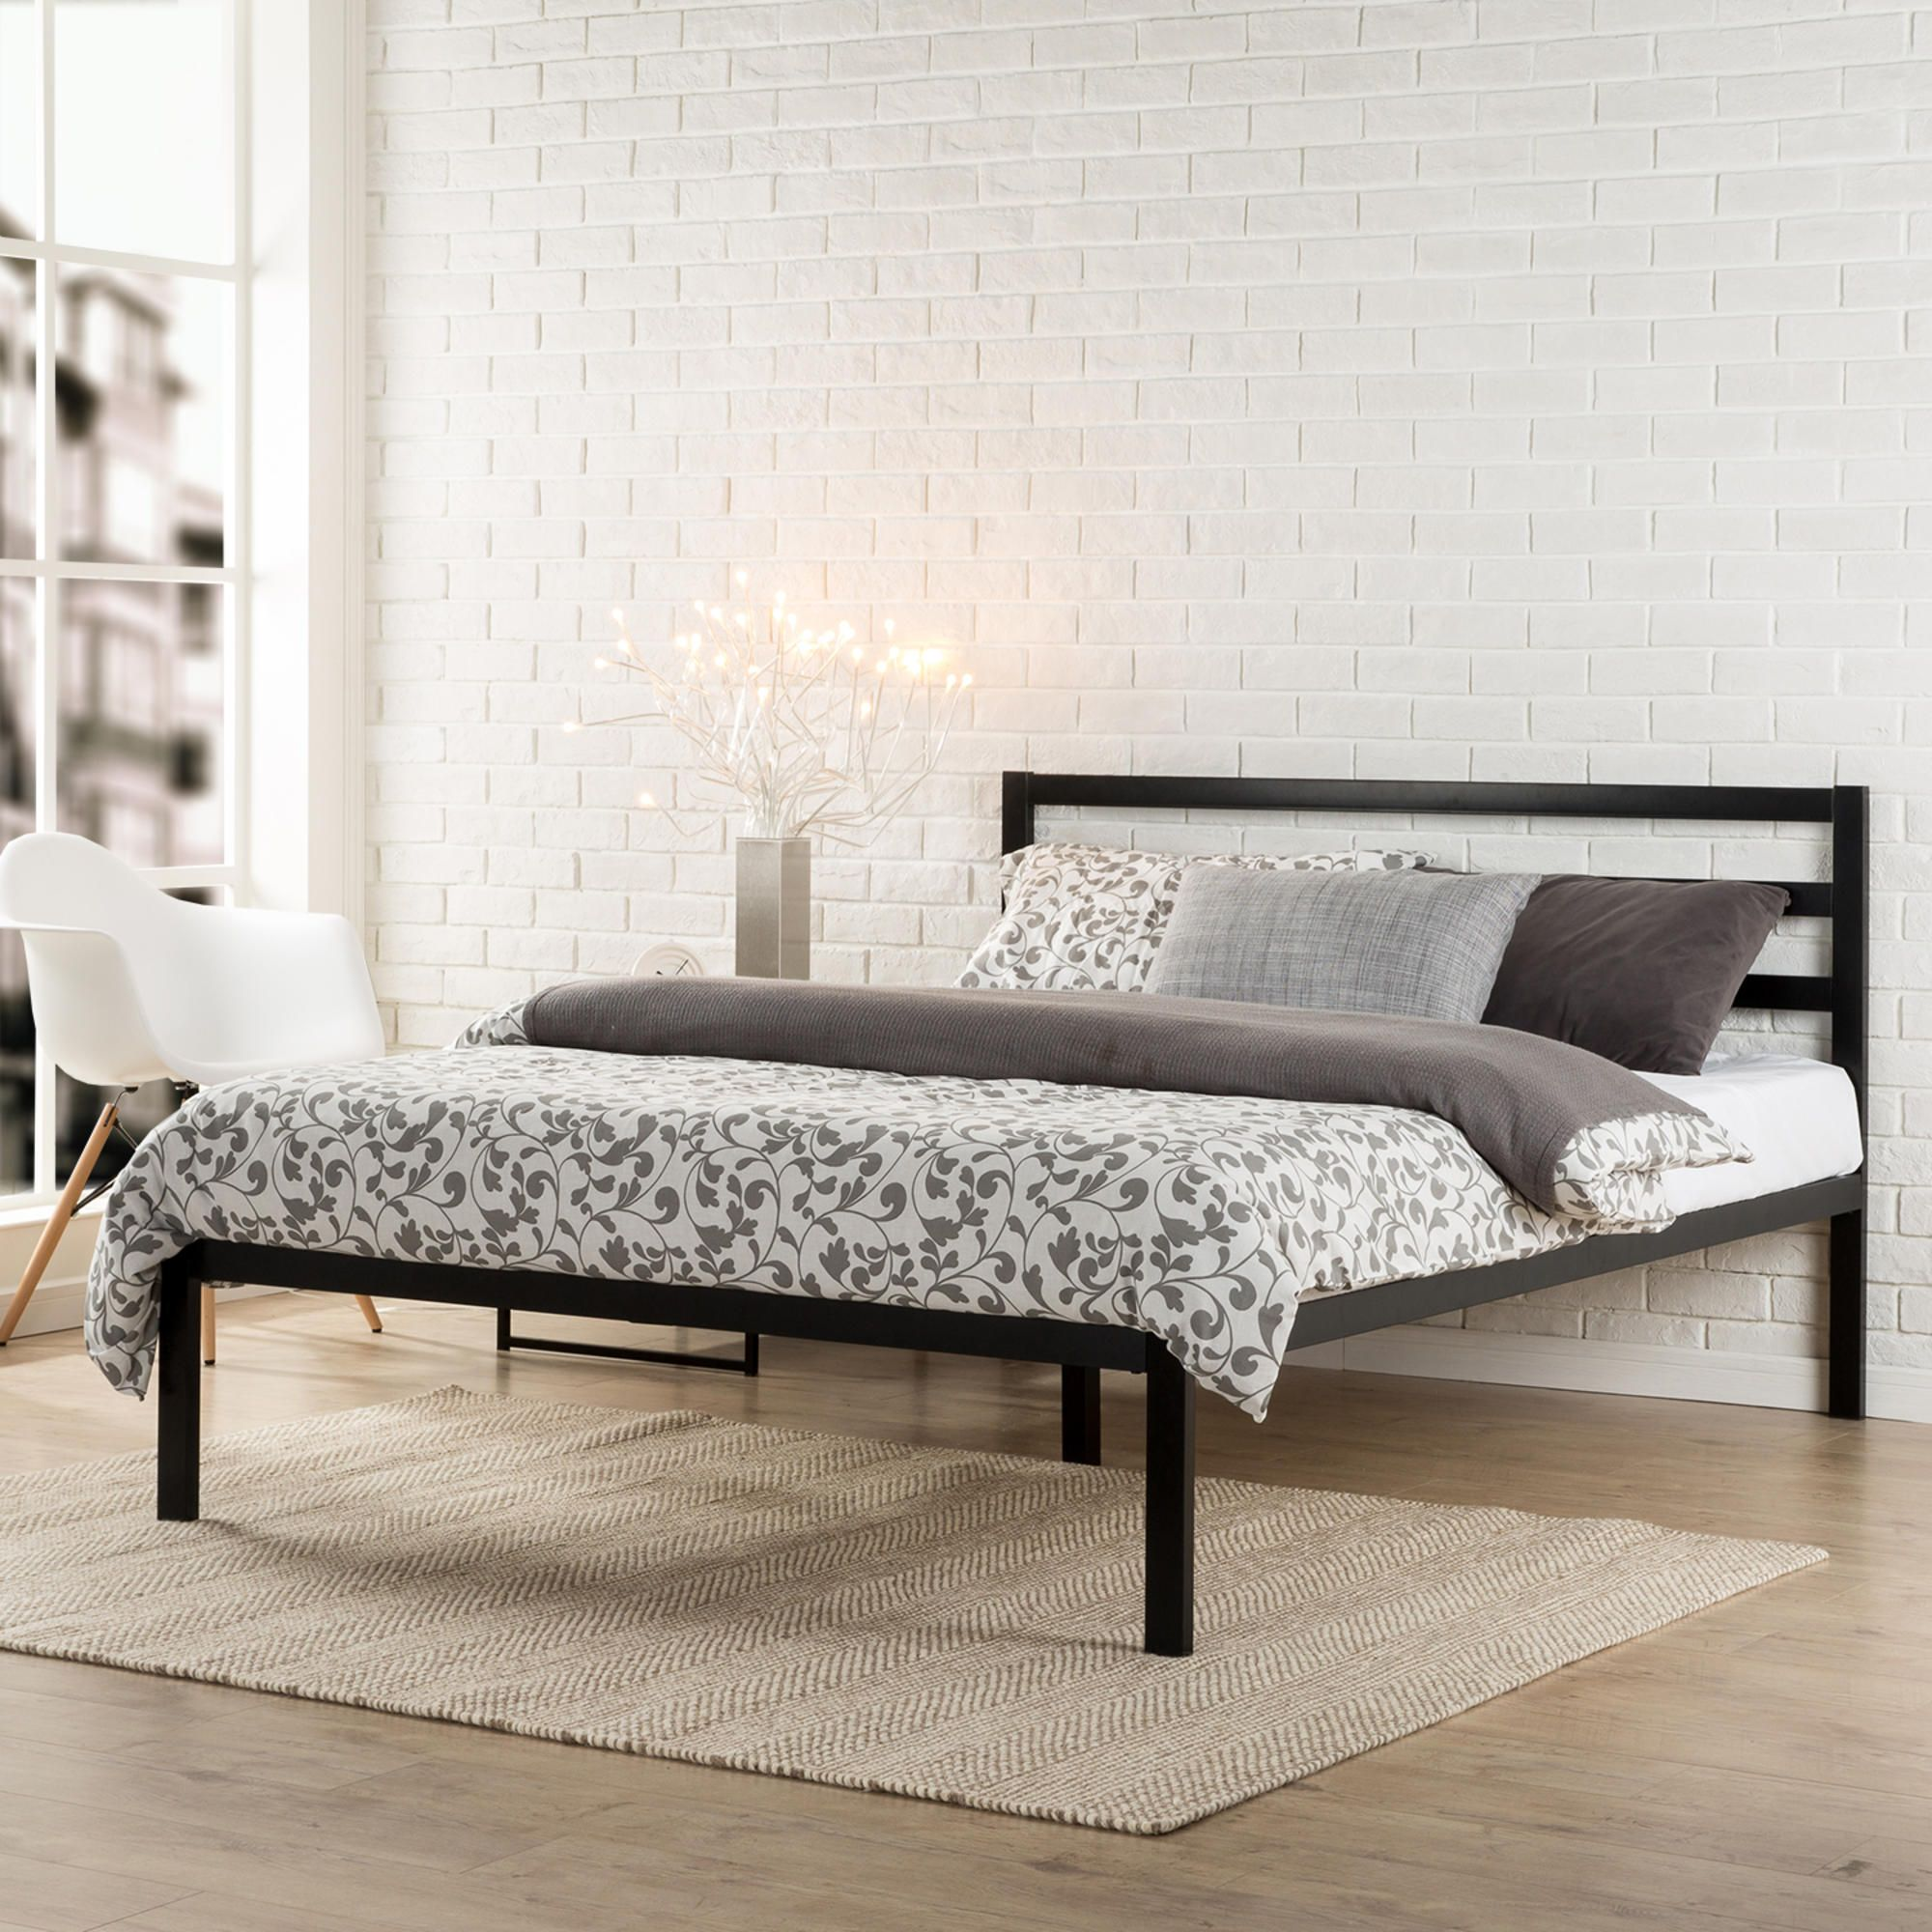 Modern Studio Platform 1500h Metal Bed Frame Mattress Foundation With Headboard No Boxspring Needed Woo Bed Frame Mattress Metal Platform Bed Metal Bed Frame